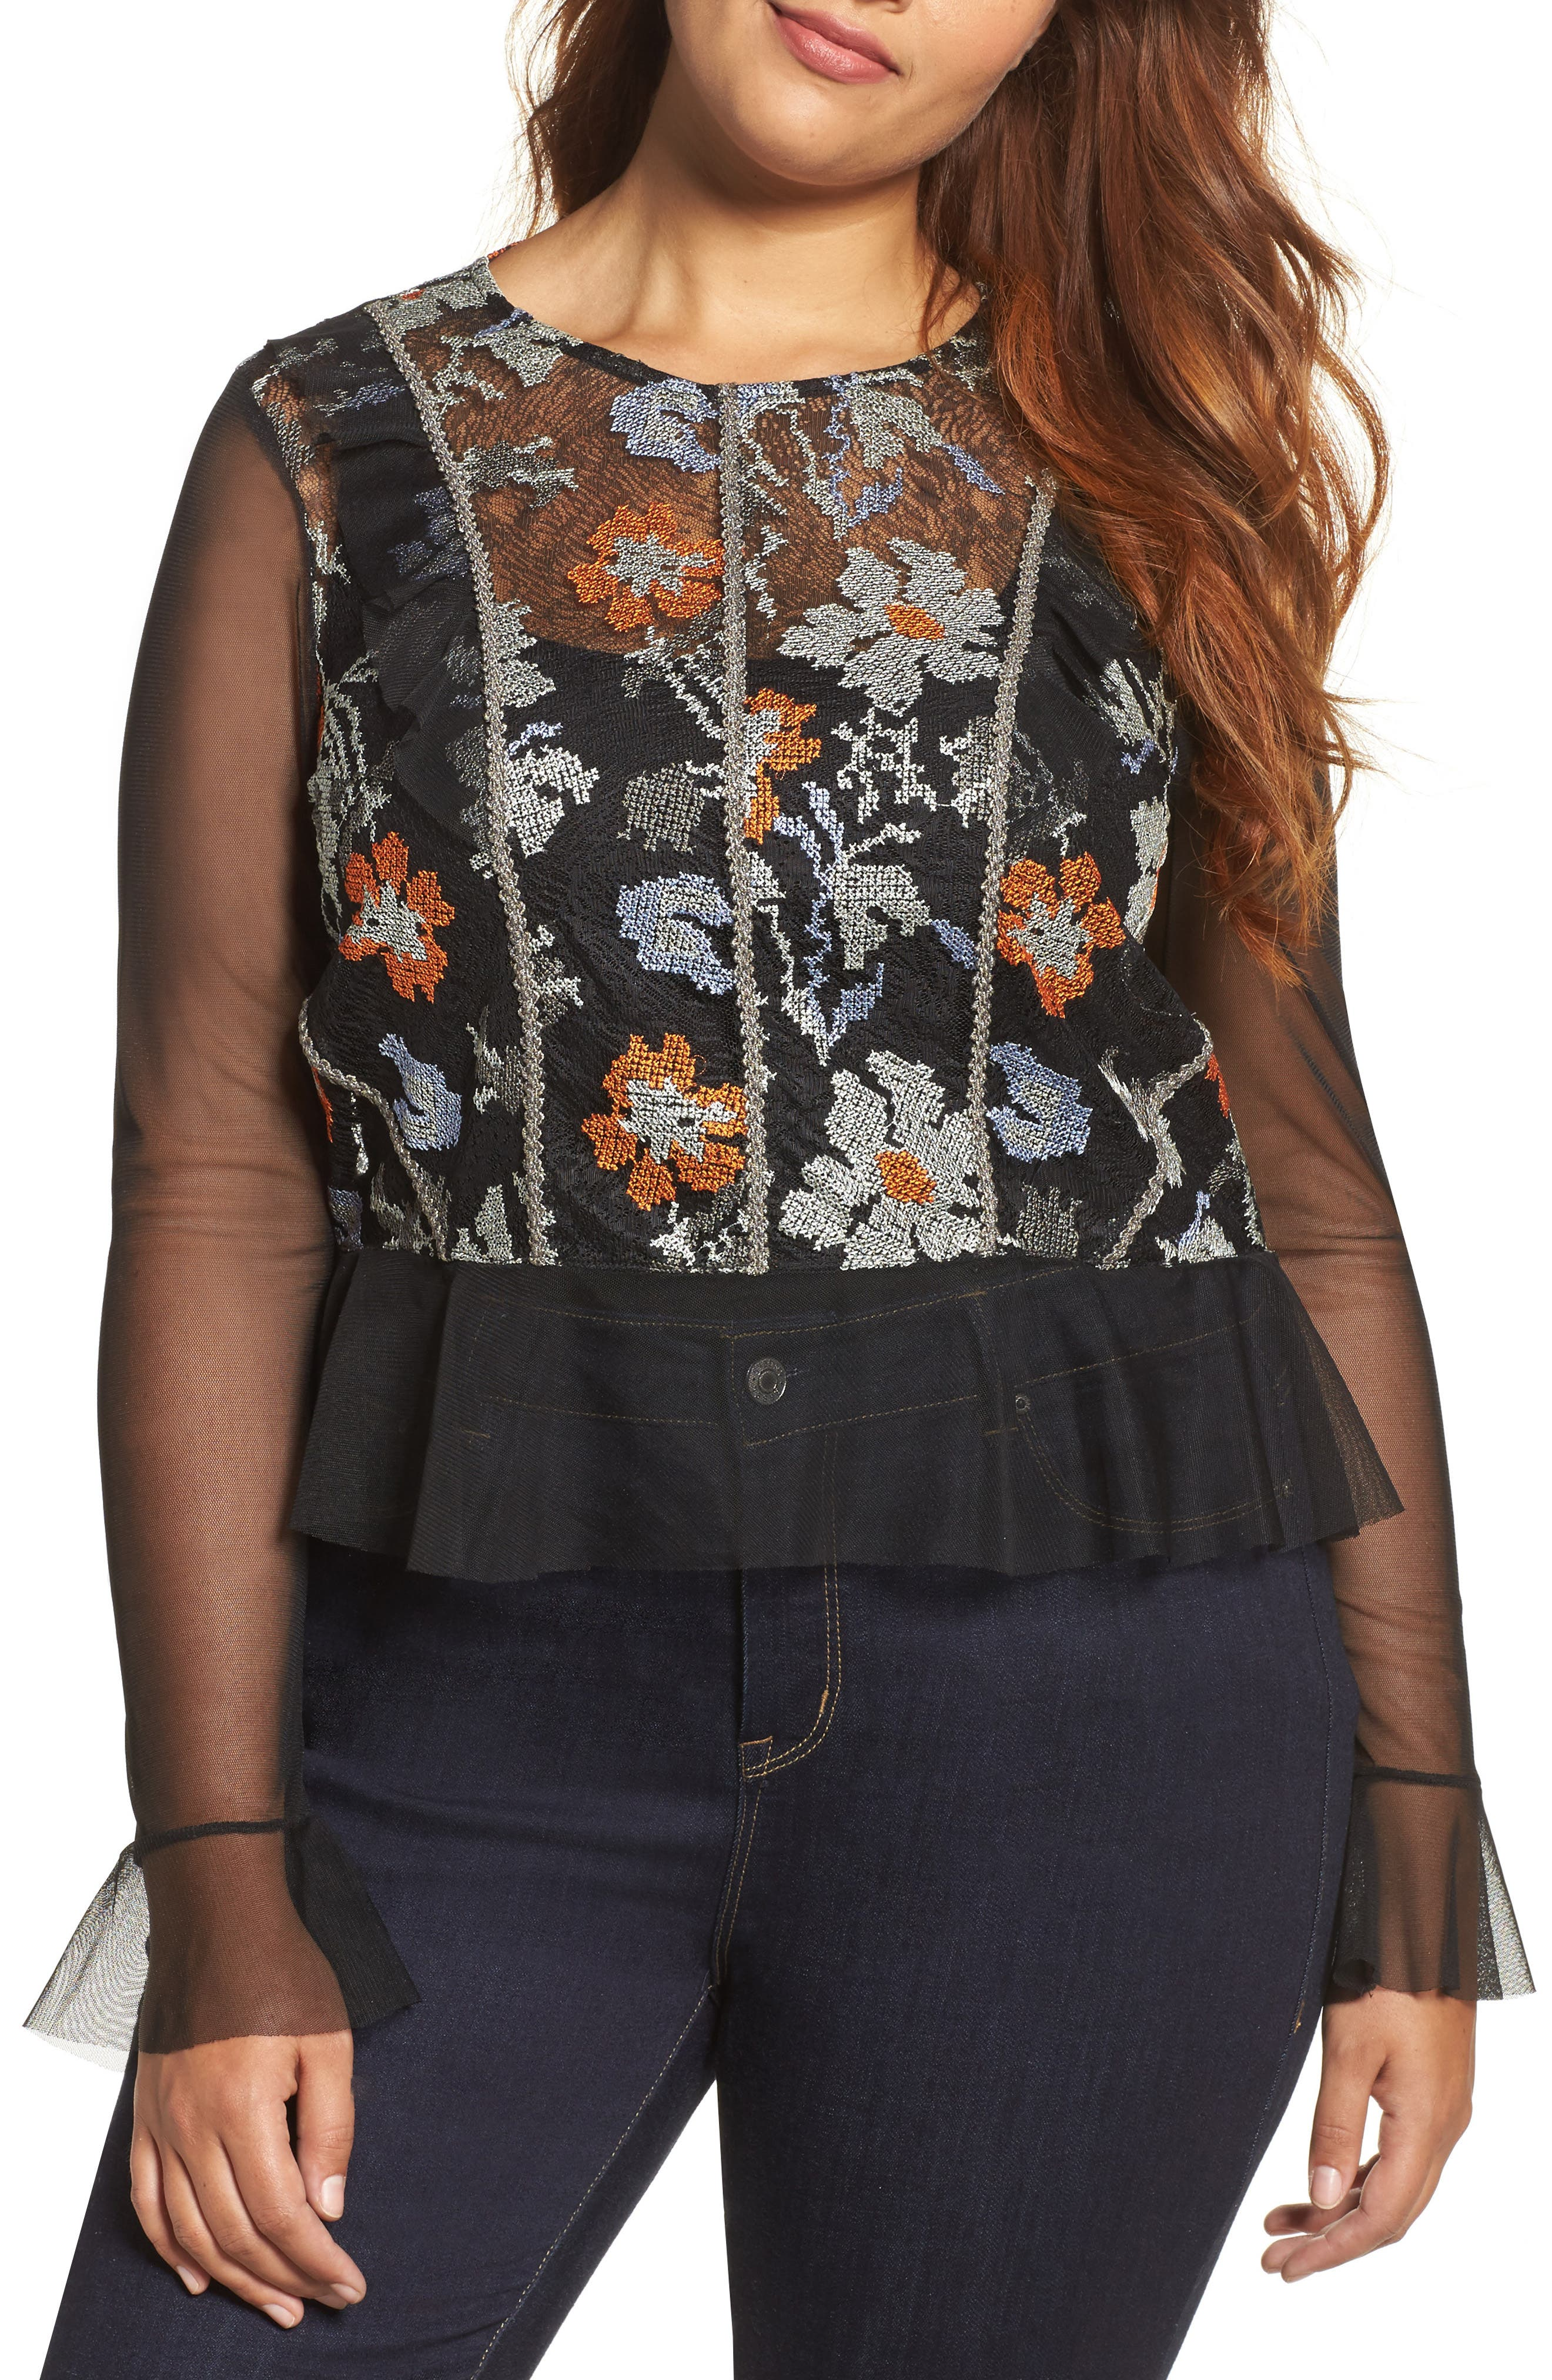 Alternate Image 1 Selected - ELVI Abstract Floral Lace Top (Plus Size)